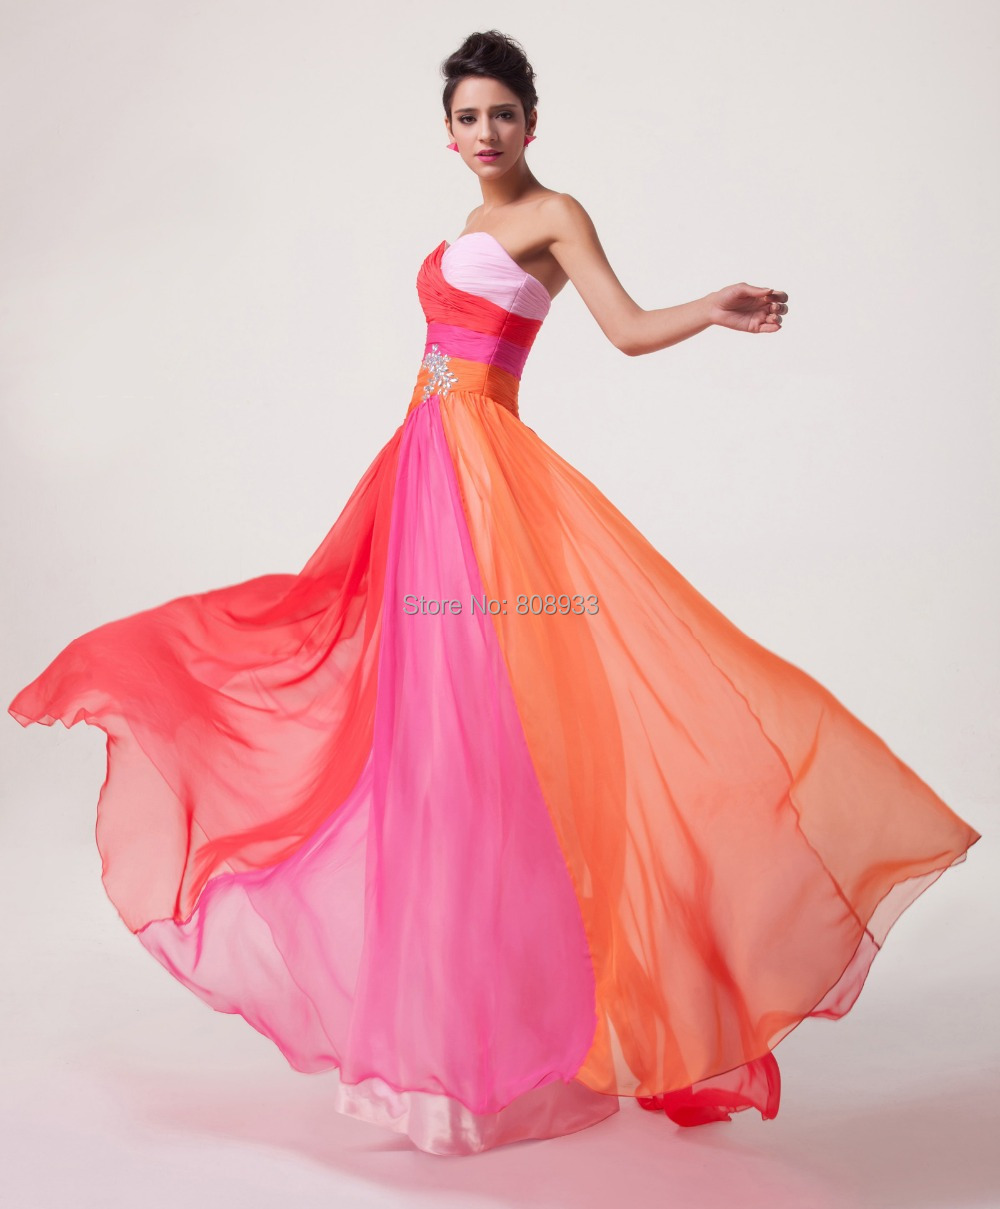 Colorful Party Dresses  Cocktail Dresses 2016